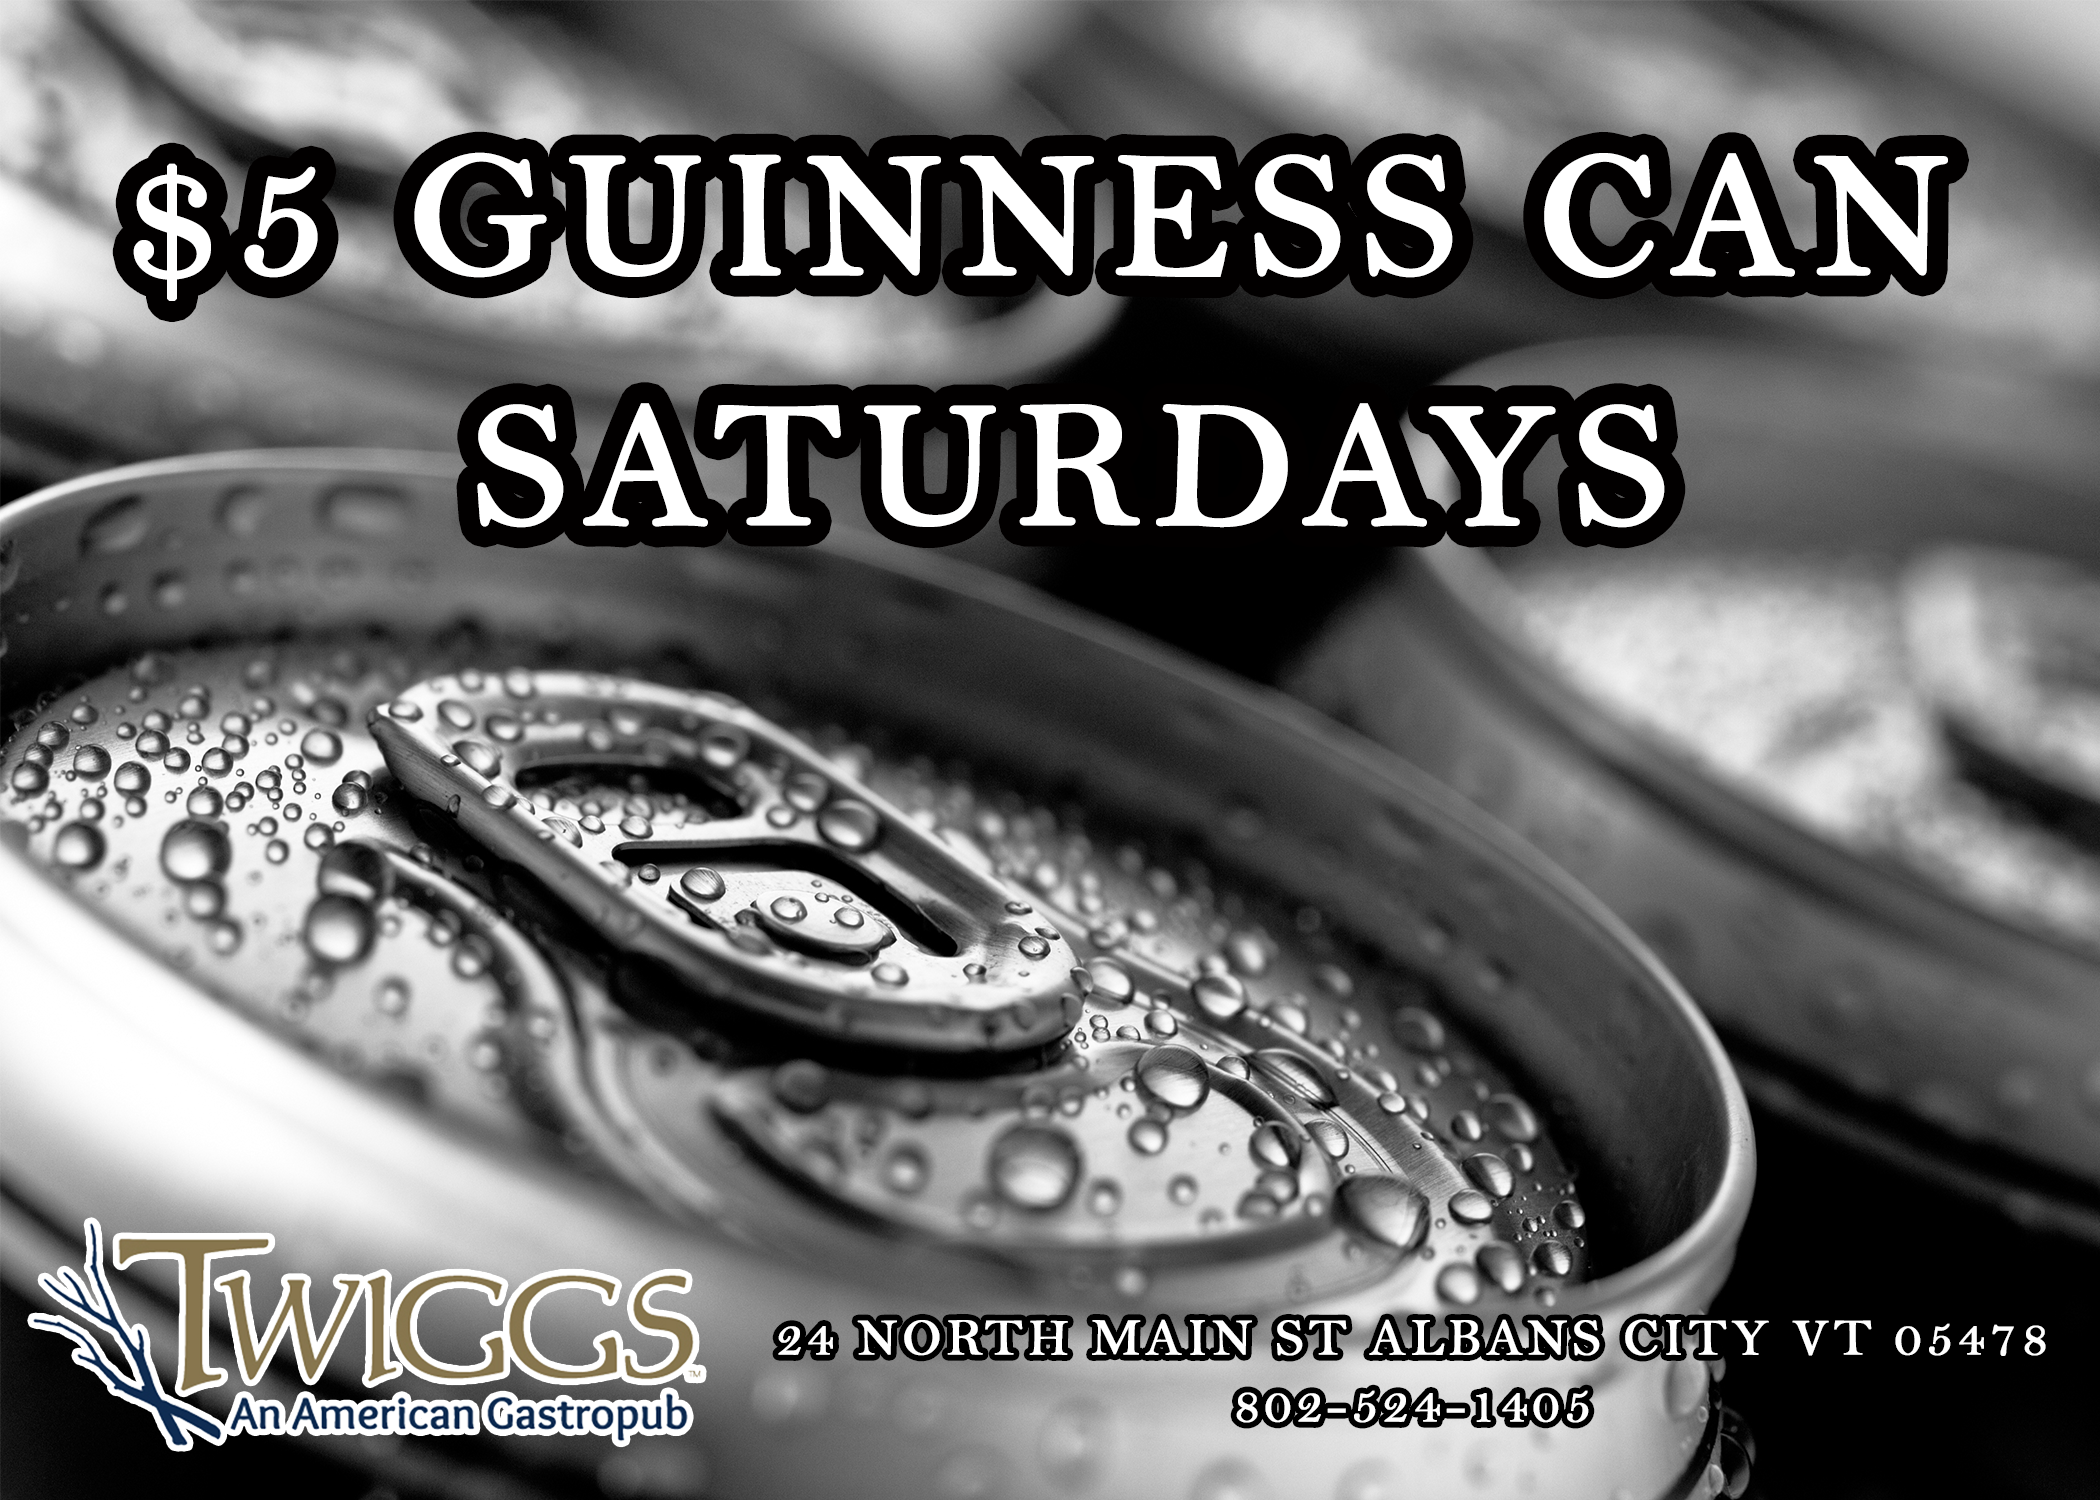 $5 Guinness Cans Saturdays